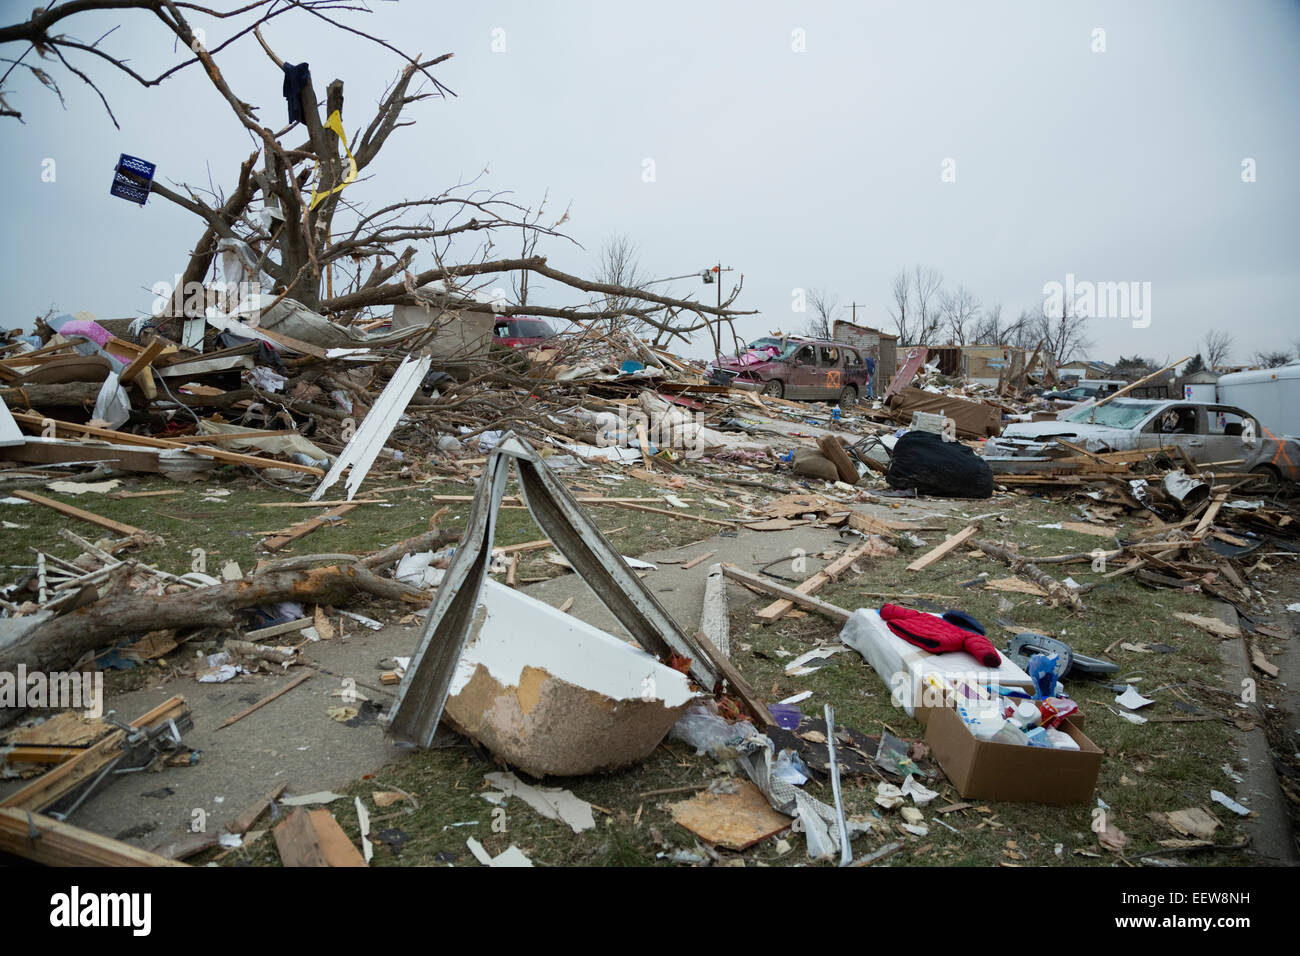 Rubble of town destroyed by tornado - Stock Image